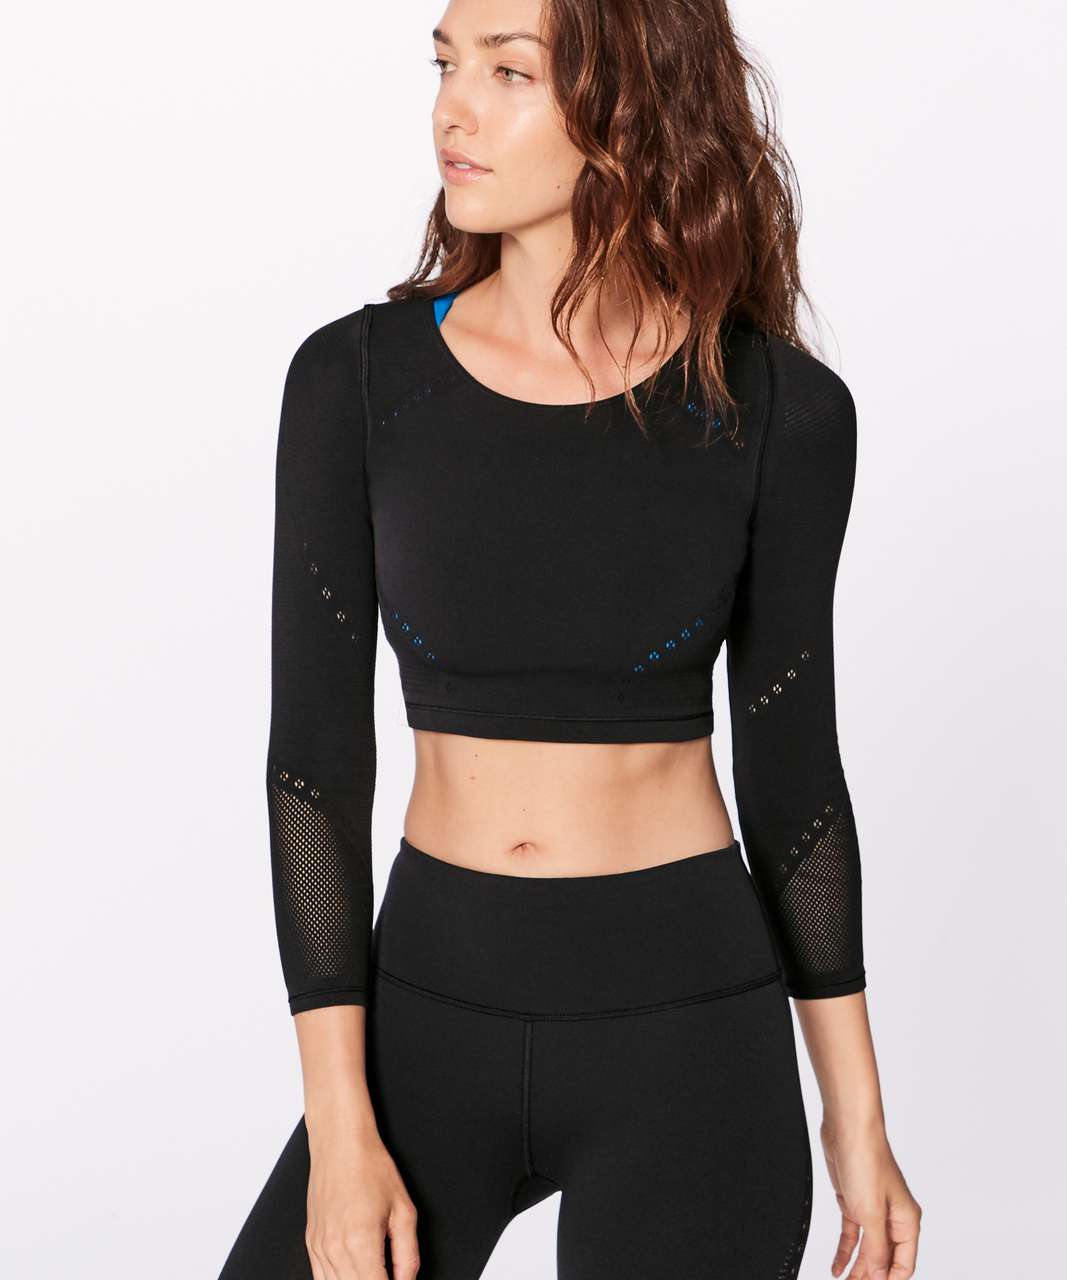 Lululemon Reveal Long Sleeve Crop Top (Posy) - Black - lulu fanatics b1ec701885f9